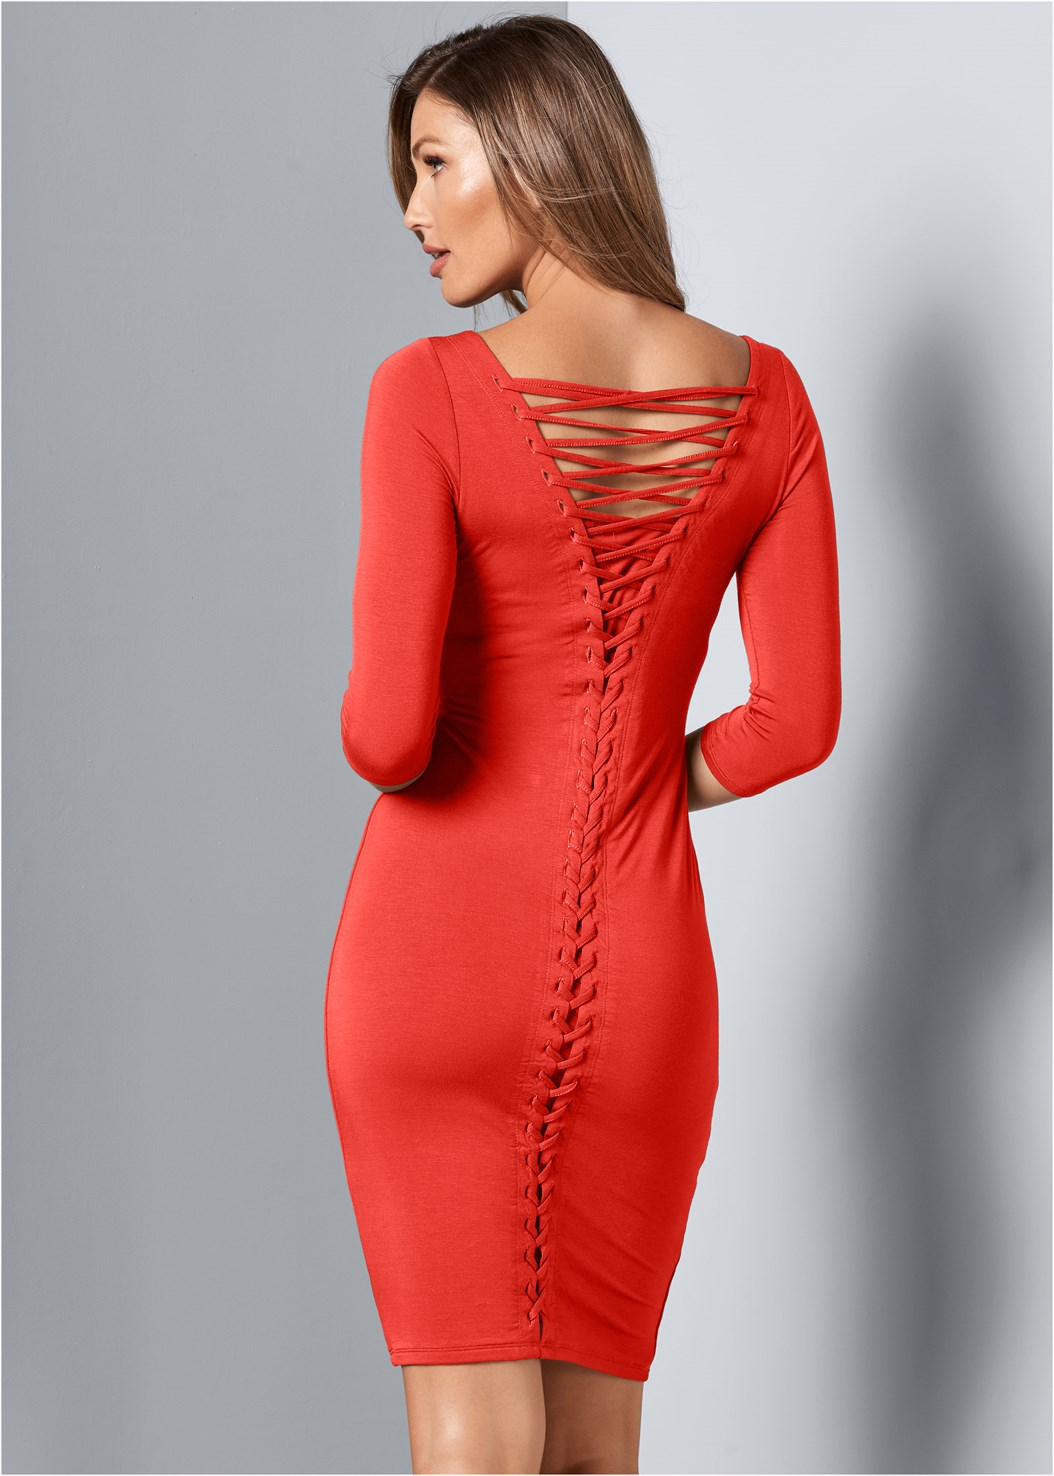 Lace Up Back Detail Dress